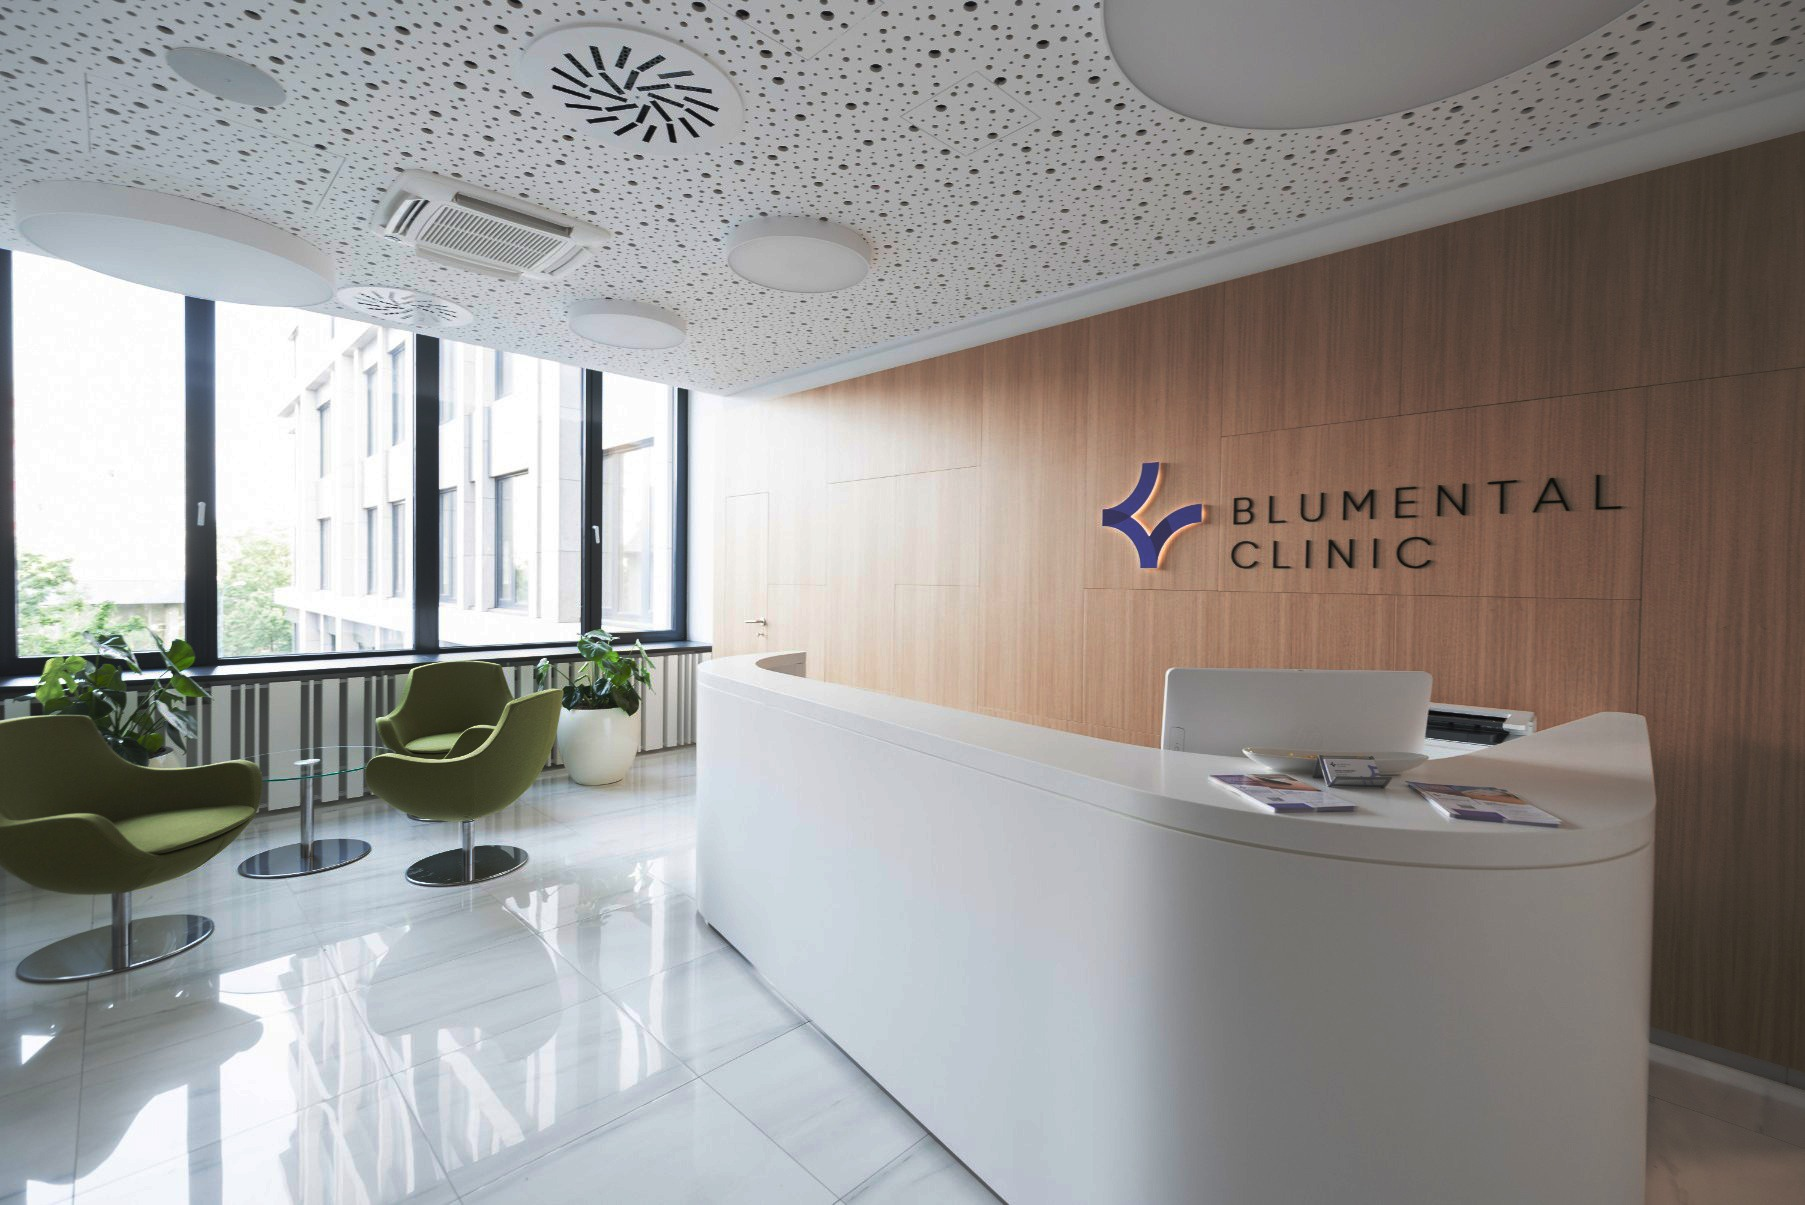 Blumental Clinic